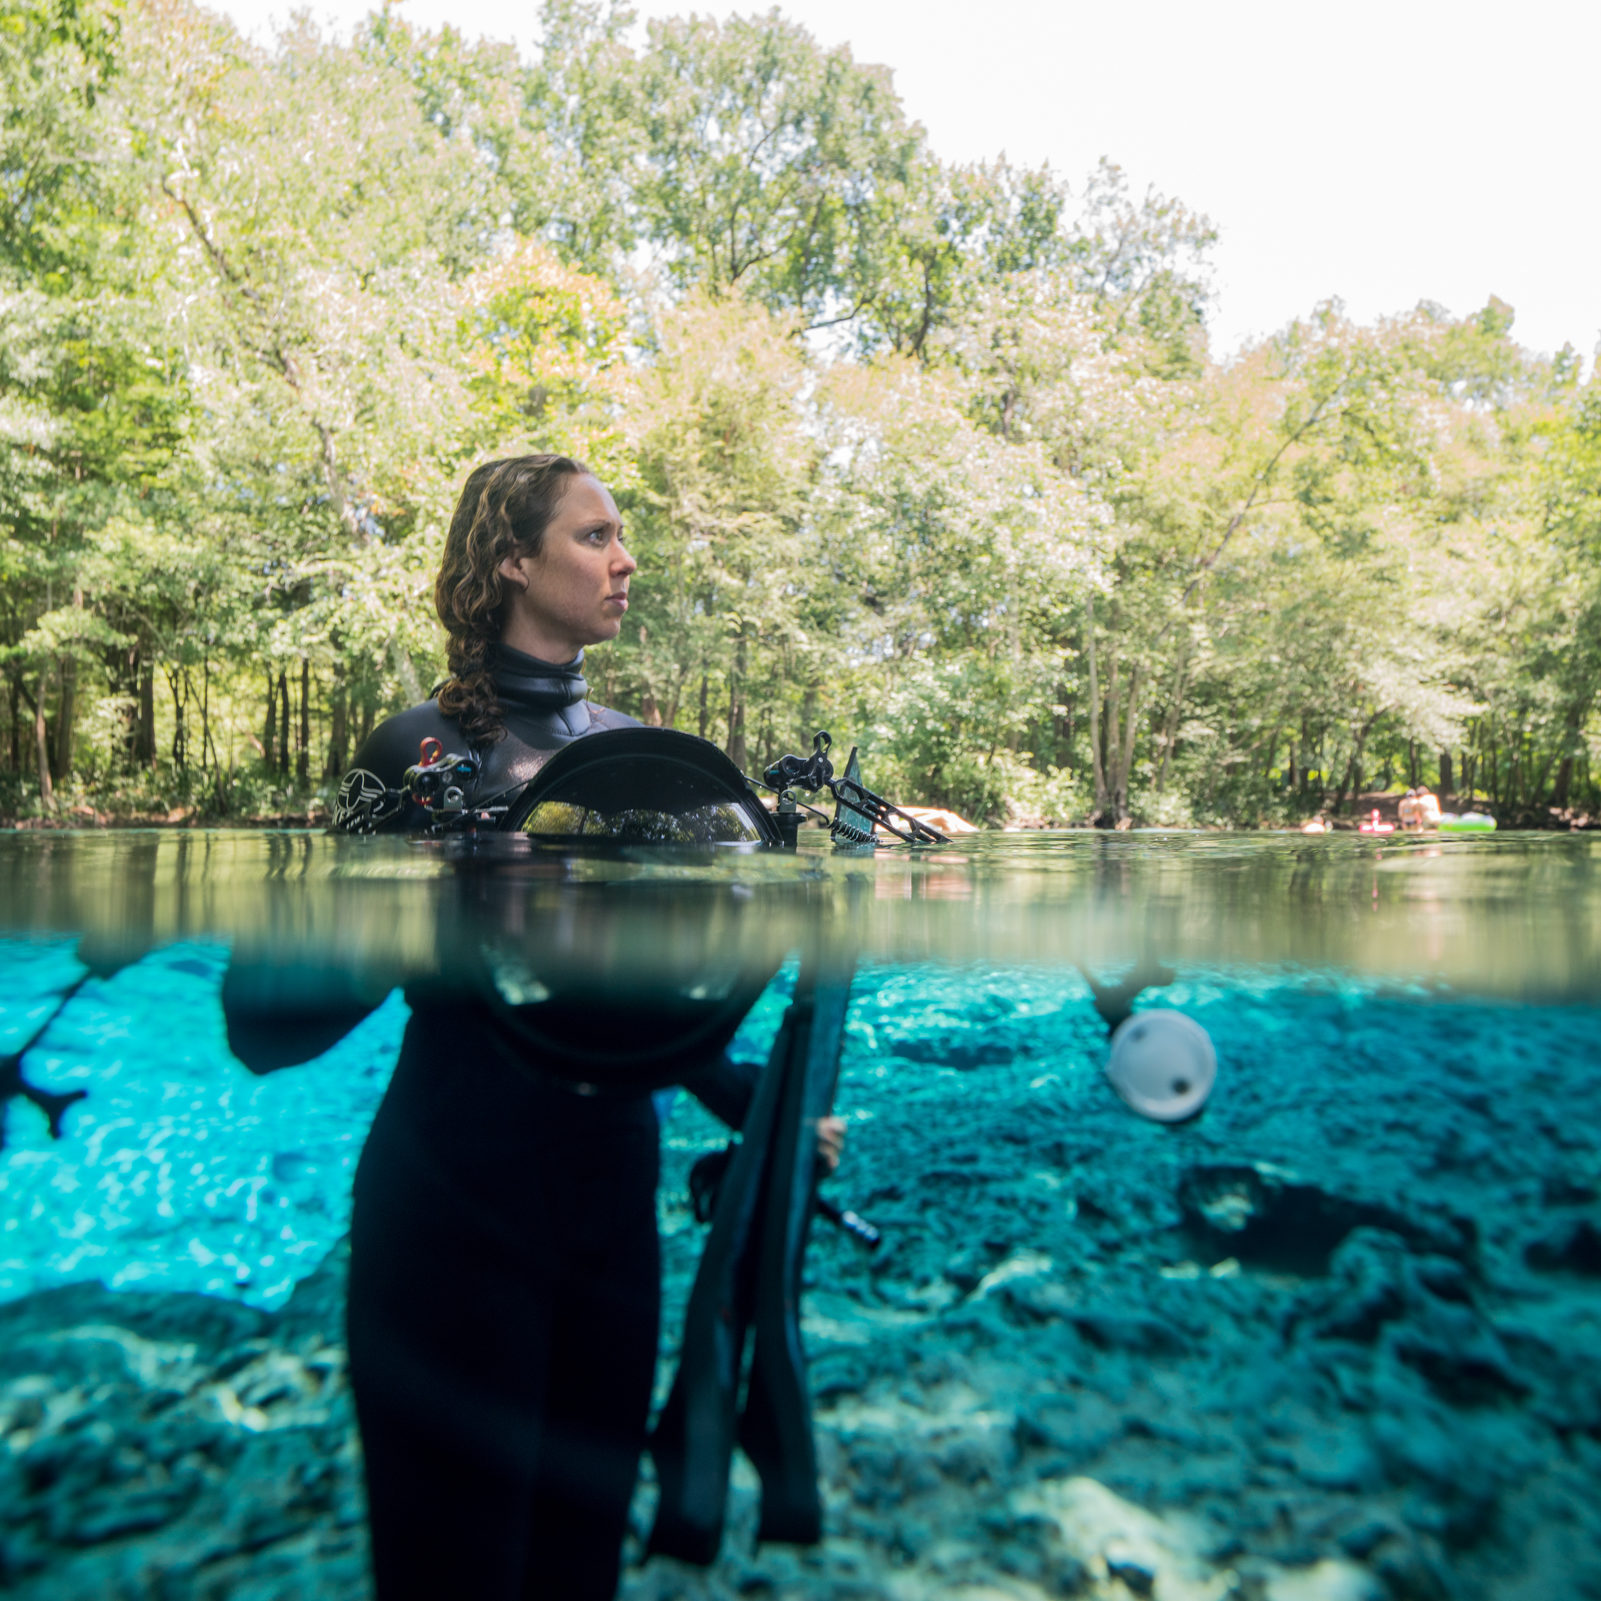 WHITE SPRINGS, FL - MAY 29: Jenny Adler dives at Ginnie Springs in White Springs, Florida May 29, 2019 (Photo by Bob Croslin/Getty Images for National Geographic Partners)